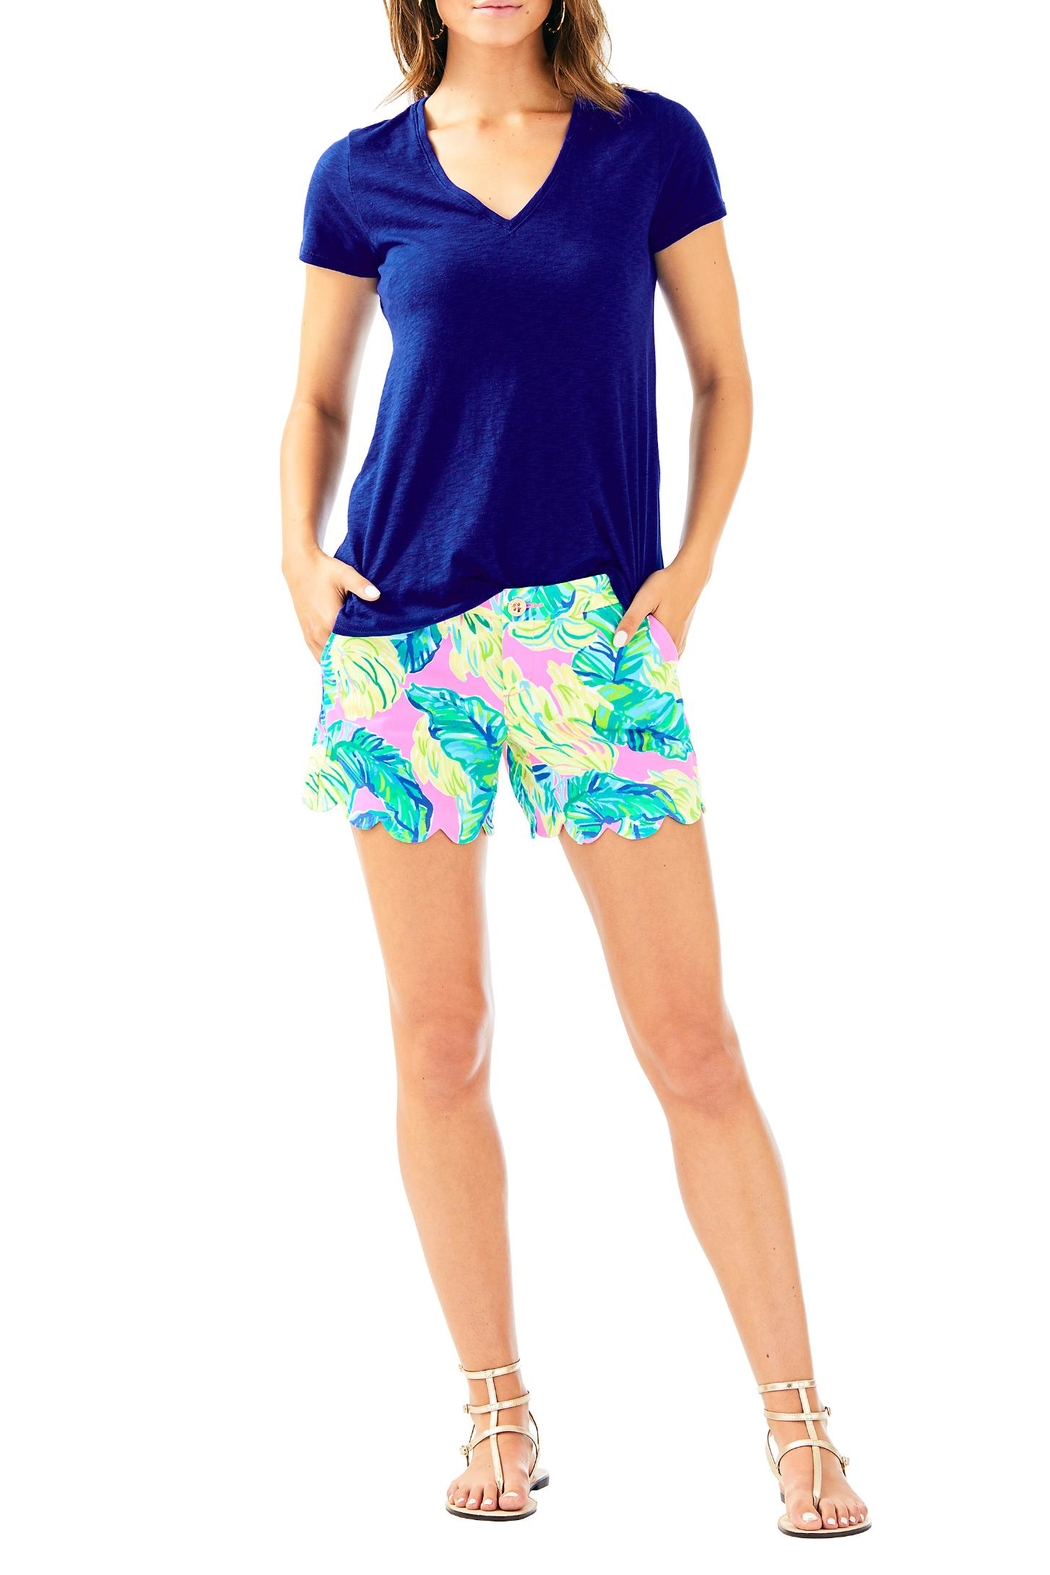 Lilly Pulitzer Buttercup Twill Short - Back Cropped Image